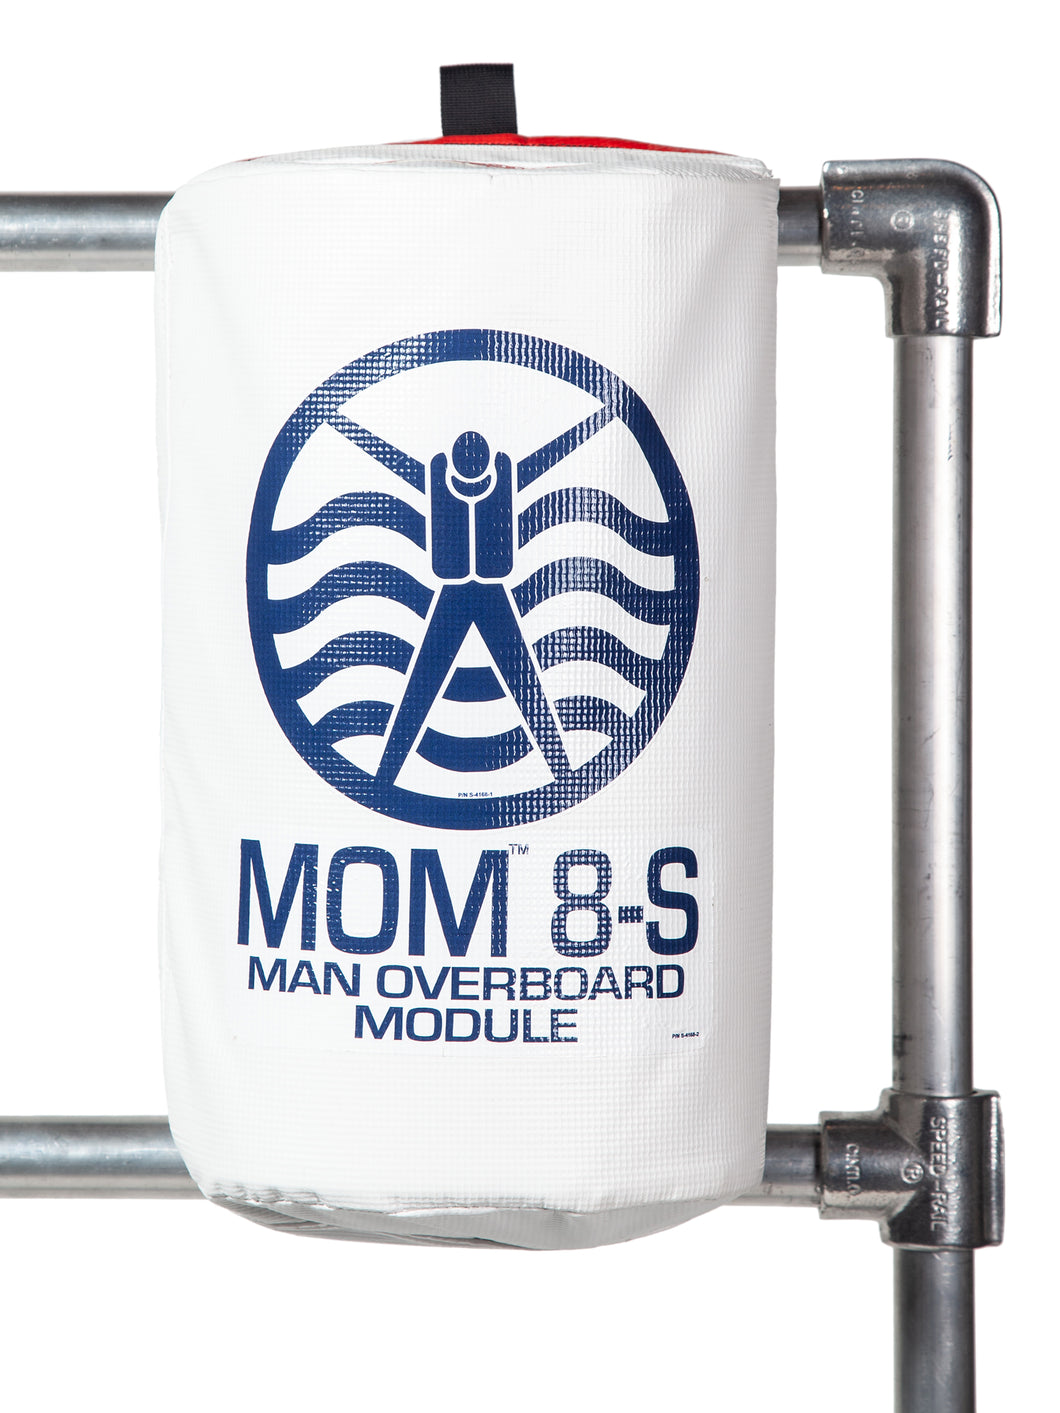 MOM 8-S: Soft Cover